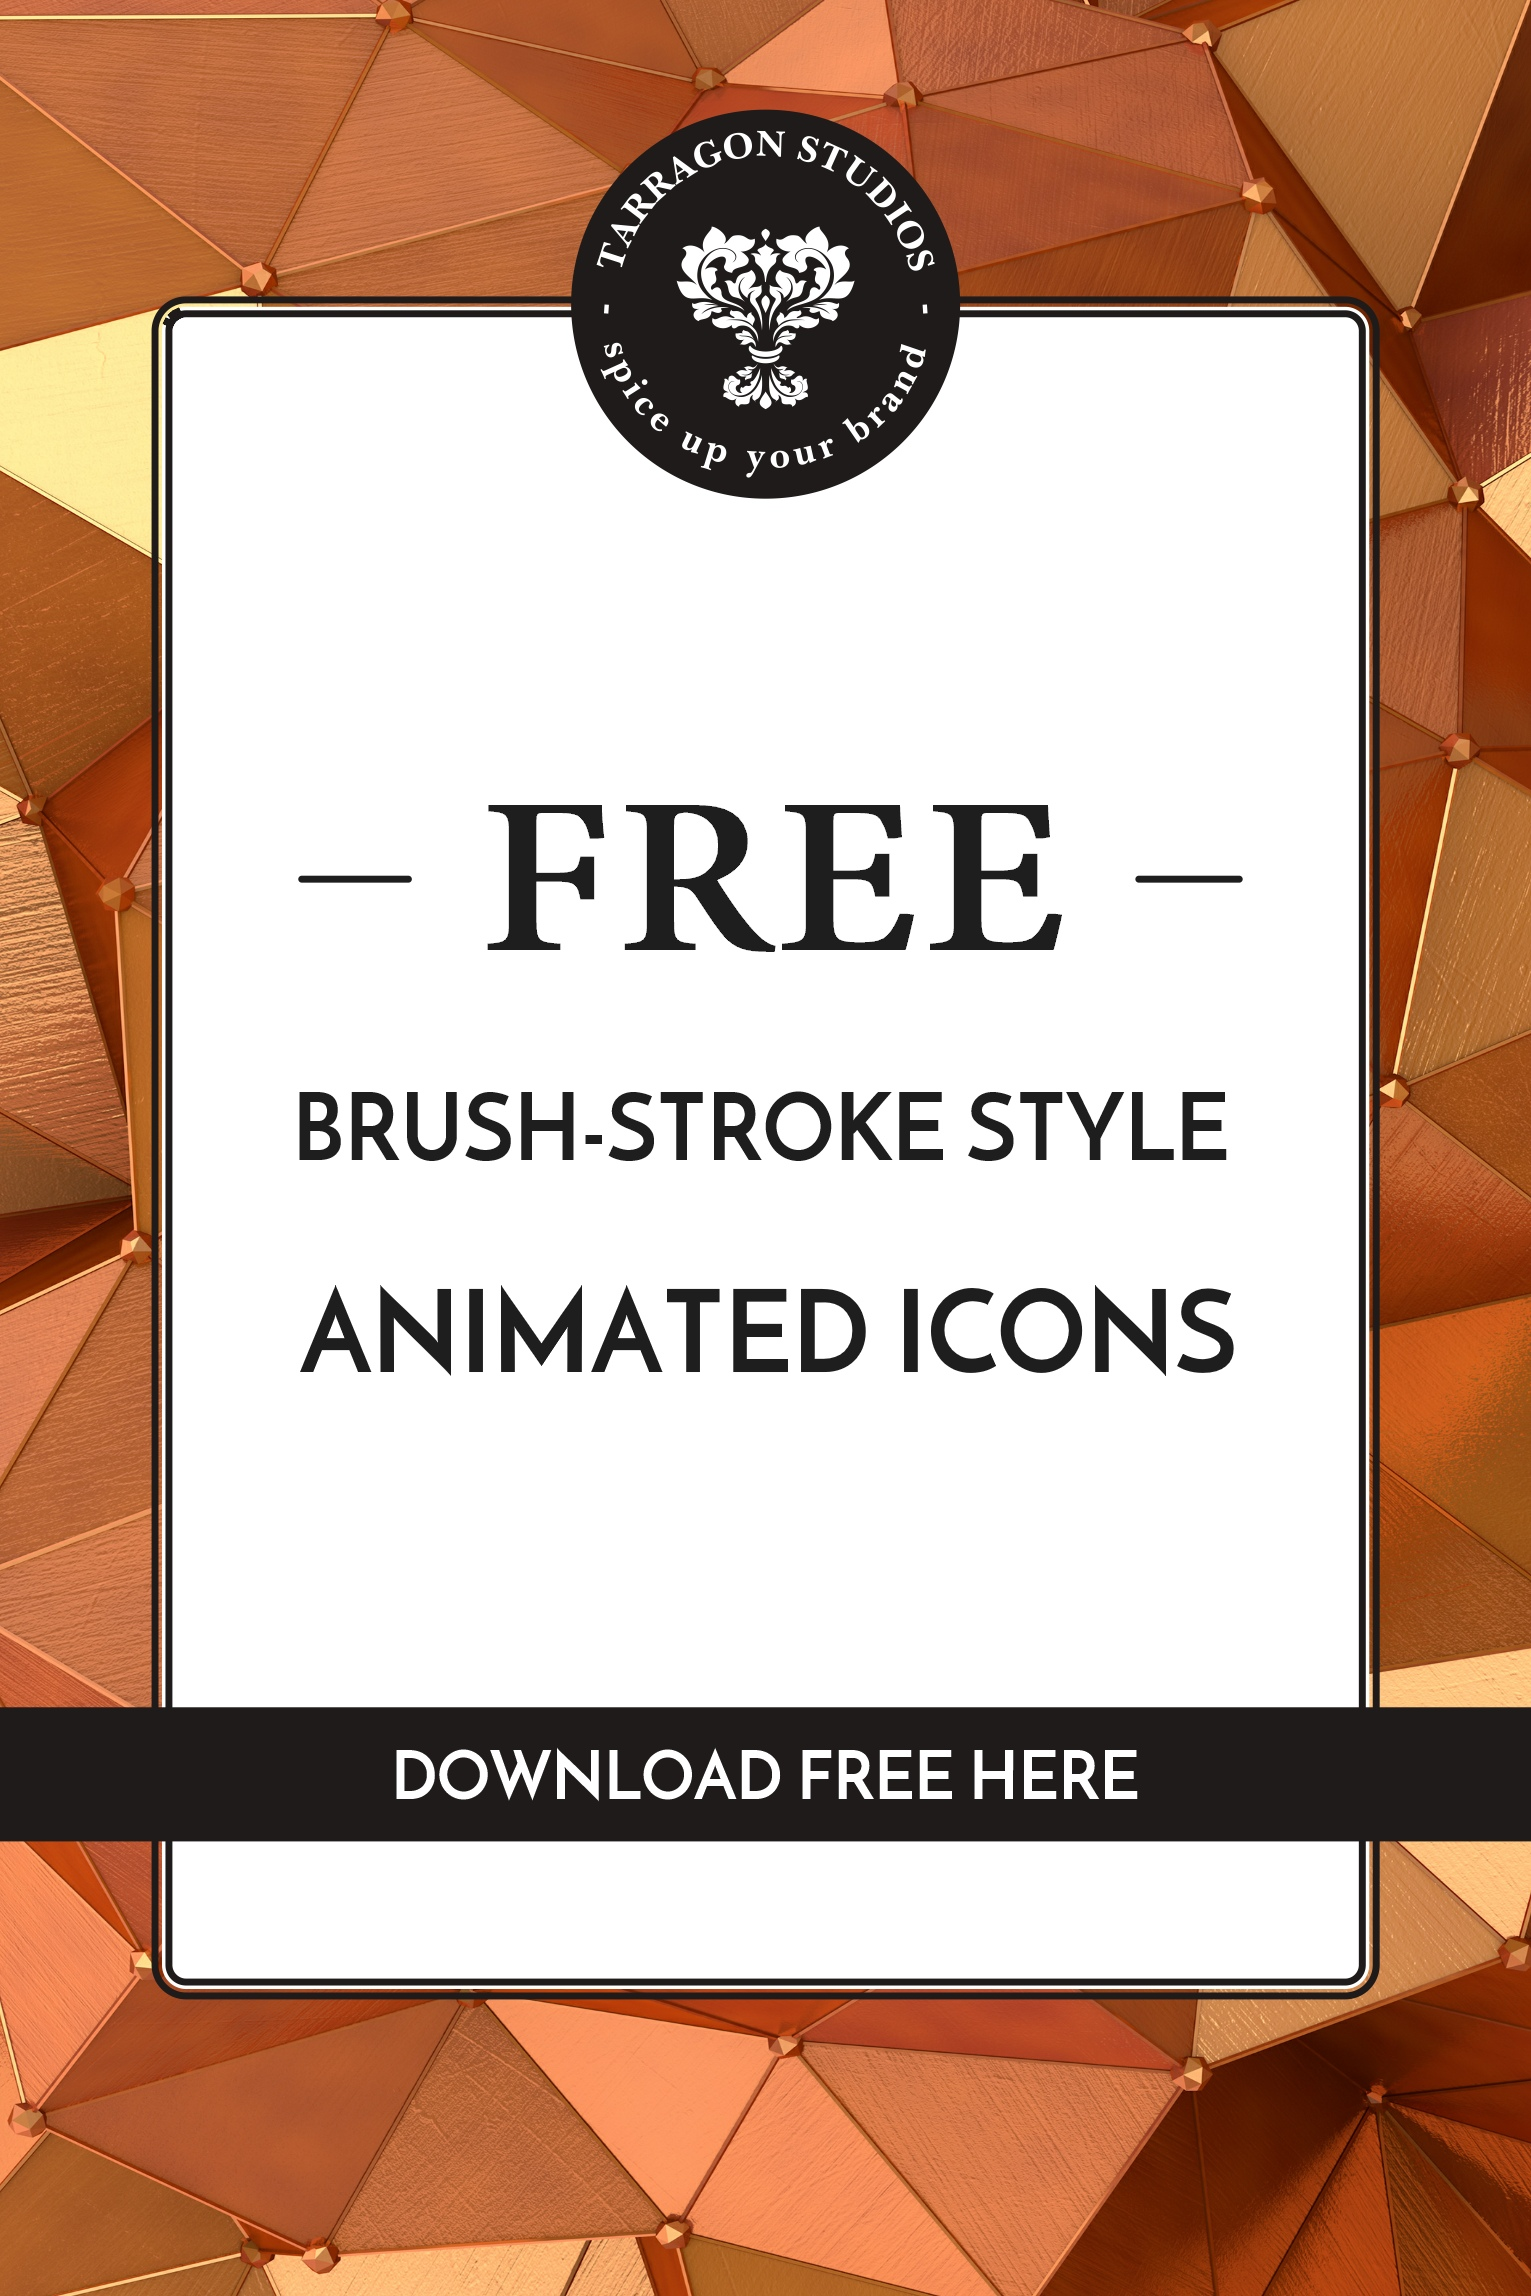 free animated icons brush stroke style. Click the image to download!